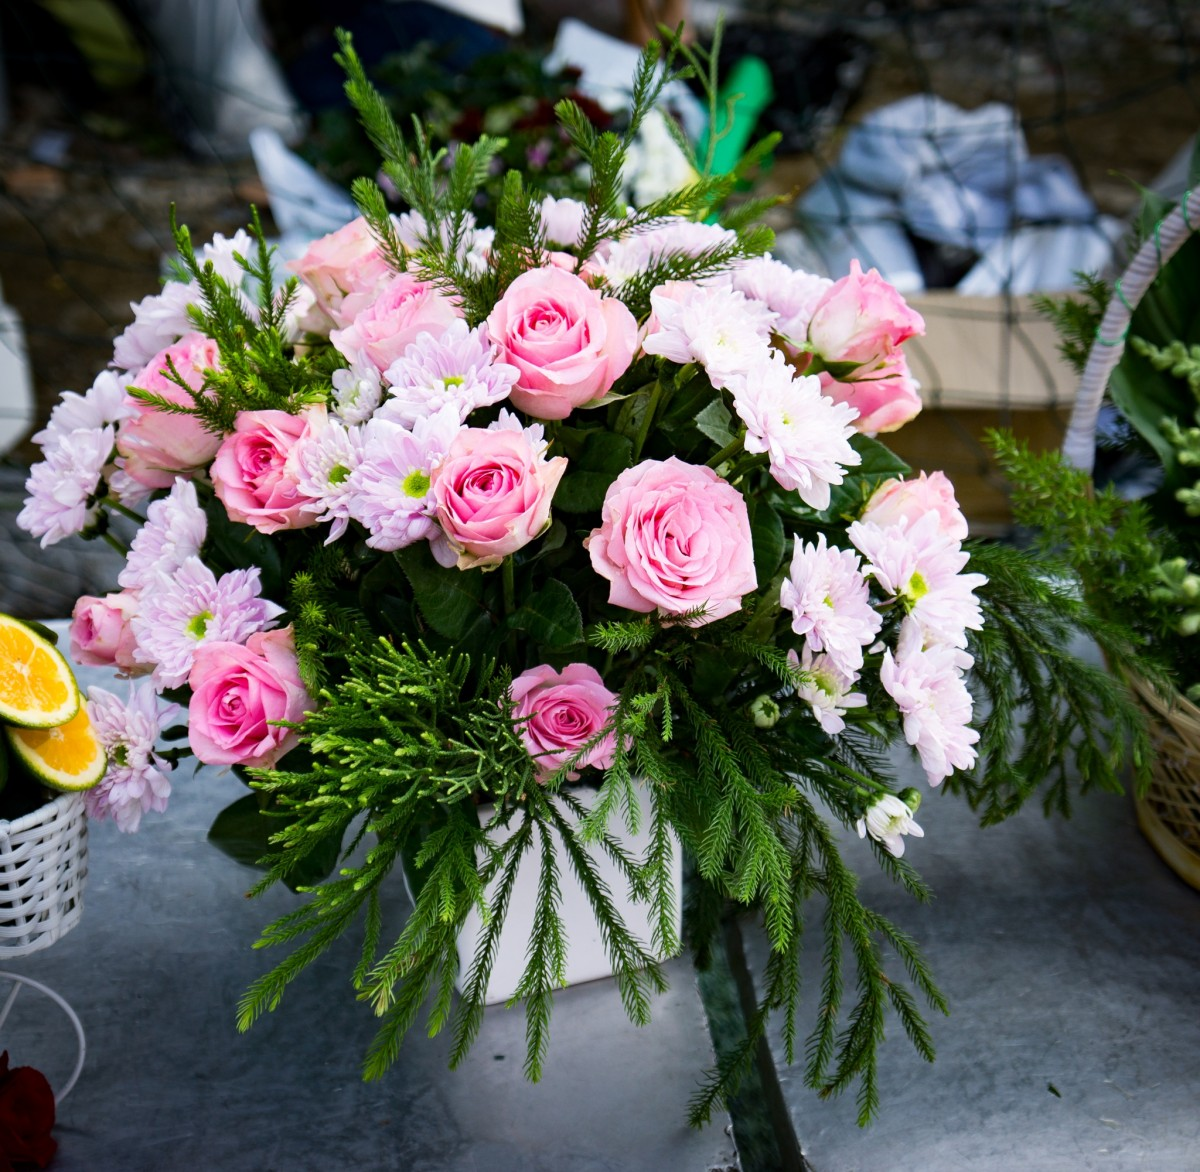 Flower Shops for Mother's Day in Wilmington